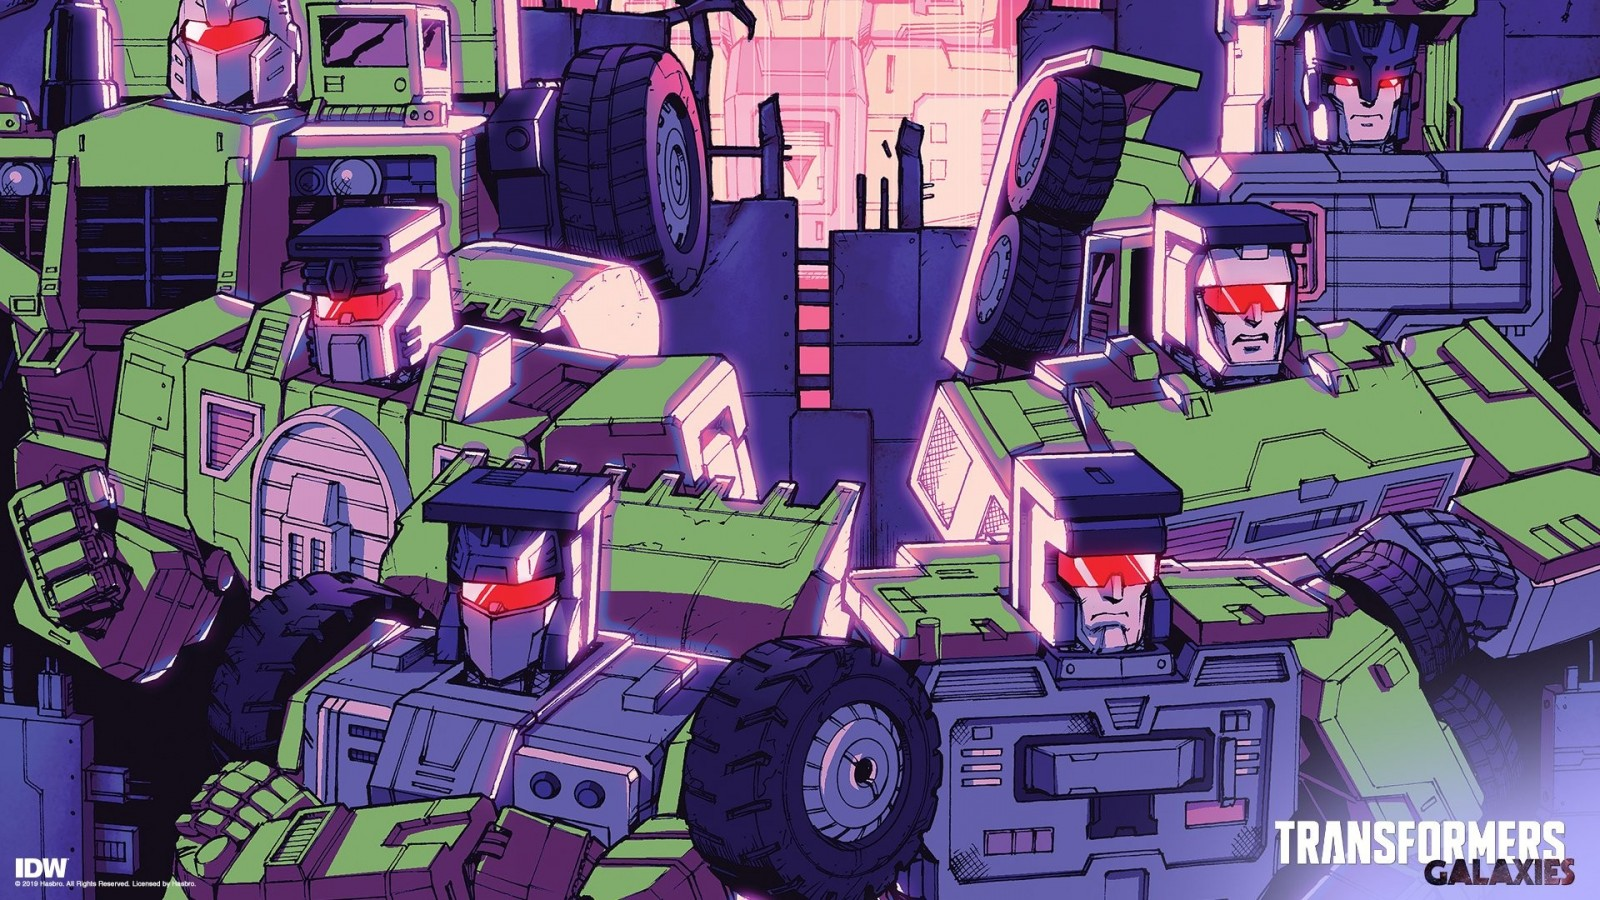 Transformers News: IDW Transformers Galaxies Constructicons Rising Exclusive Covers and Wallpapers